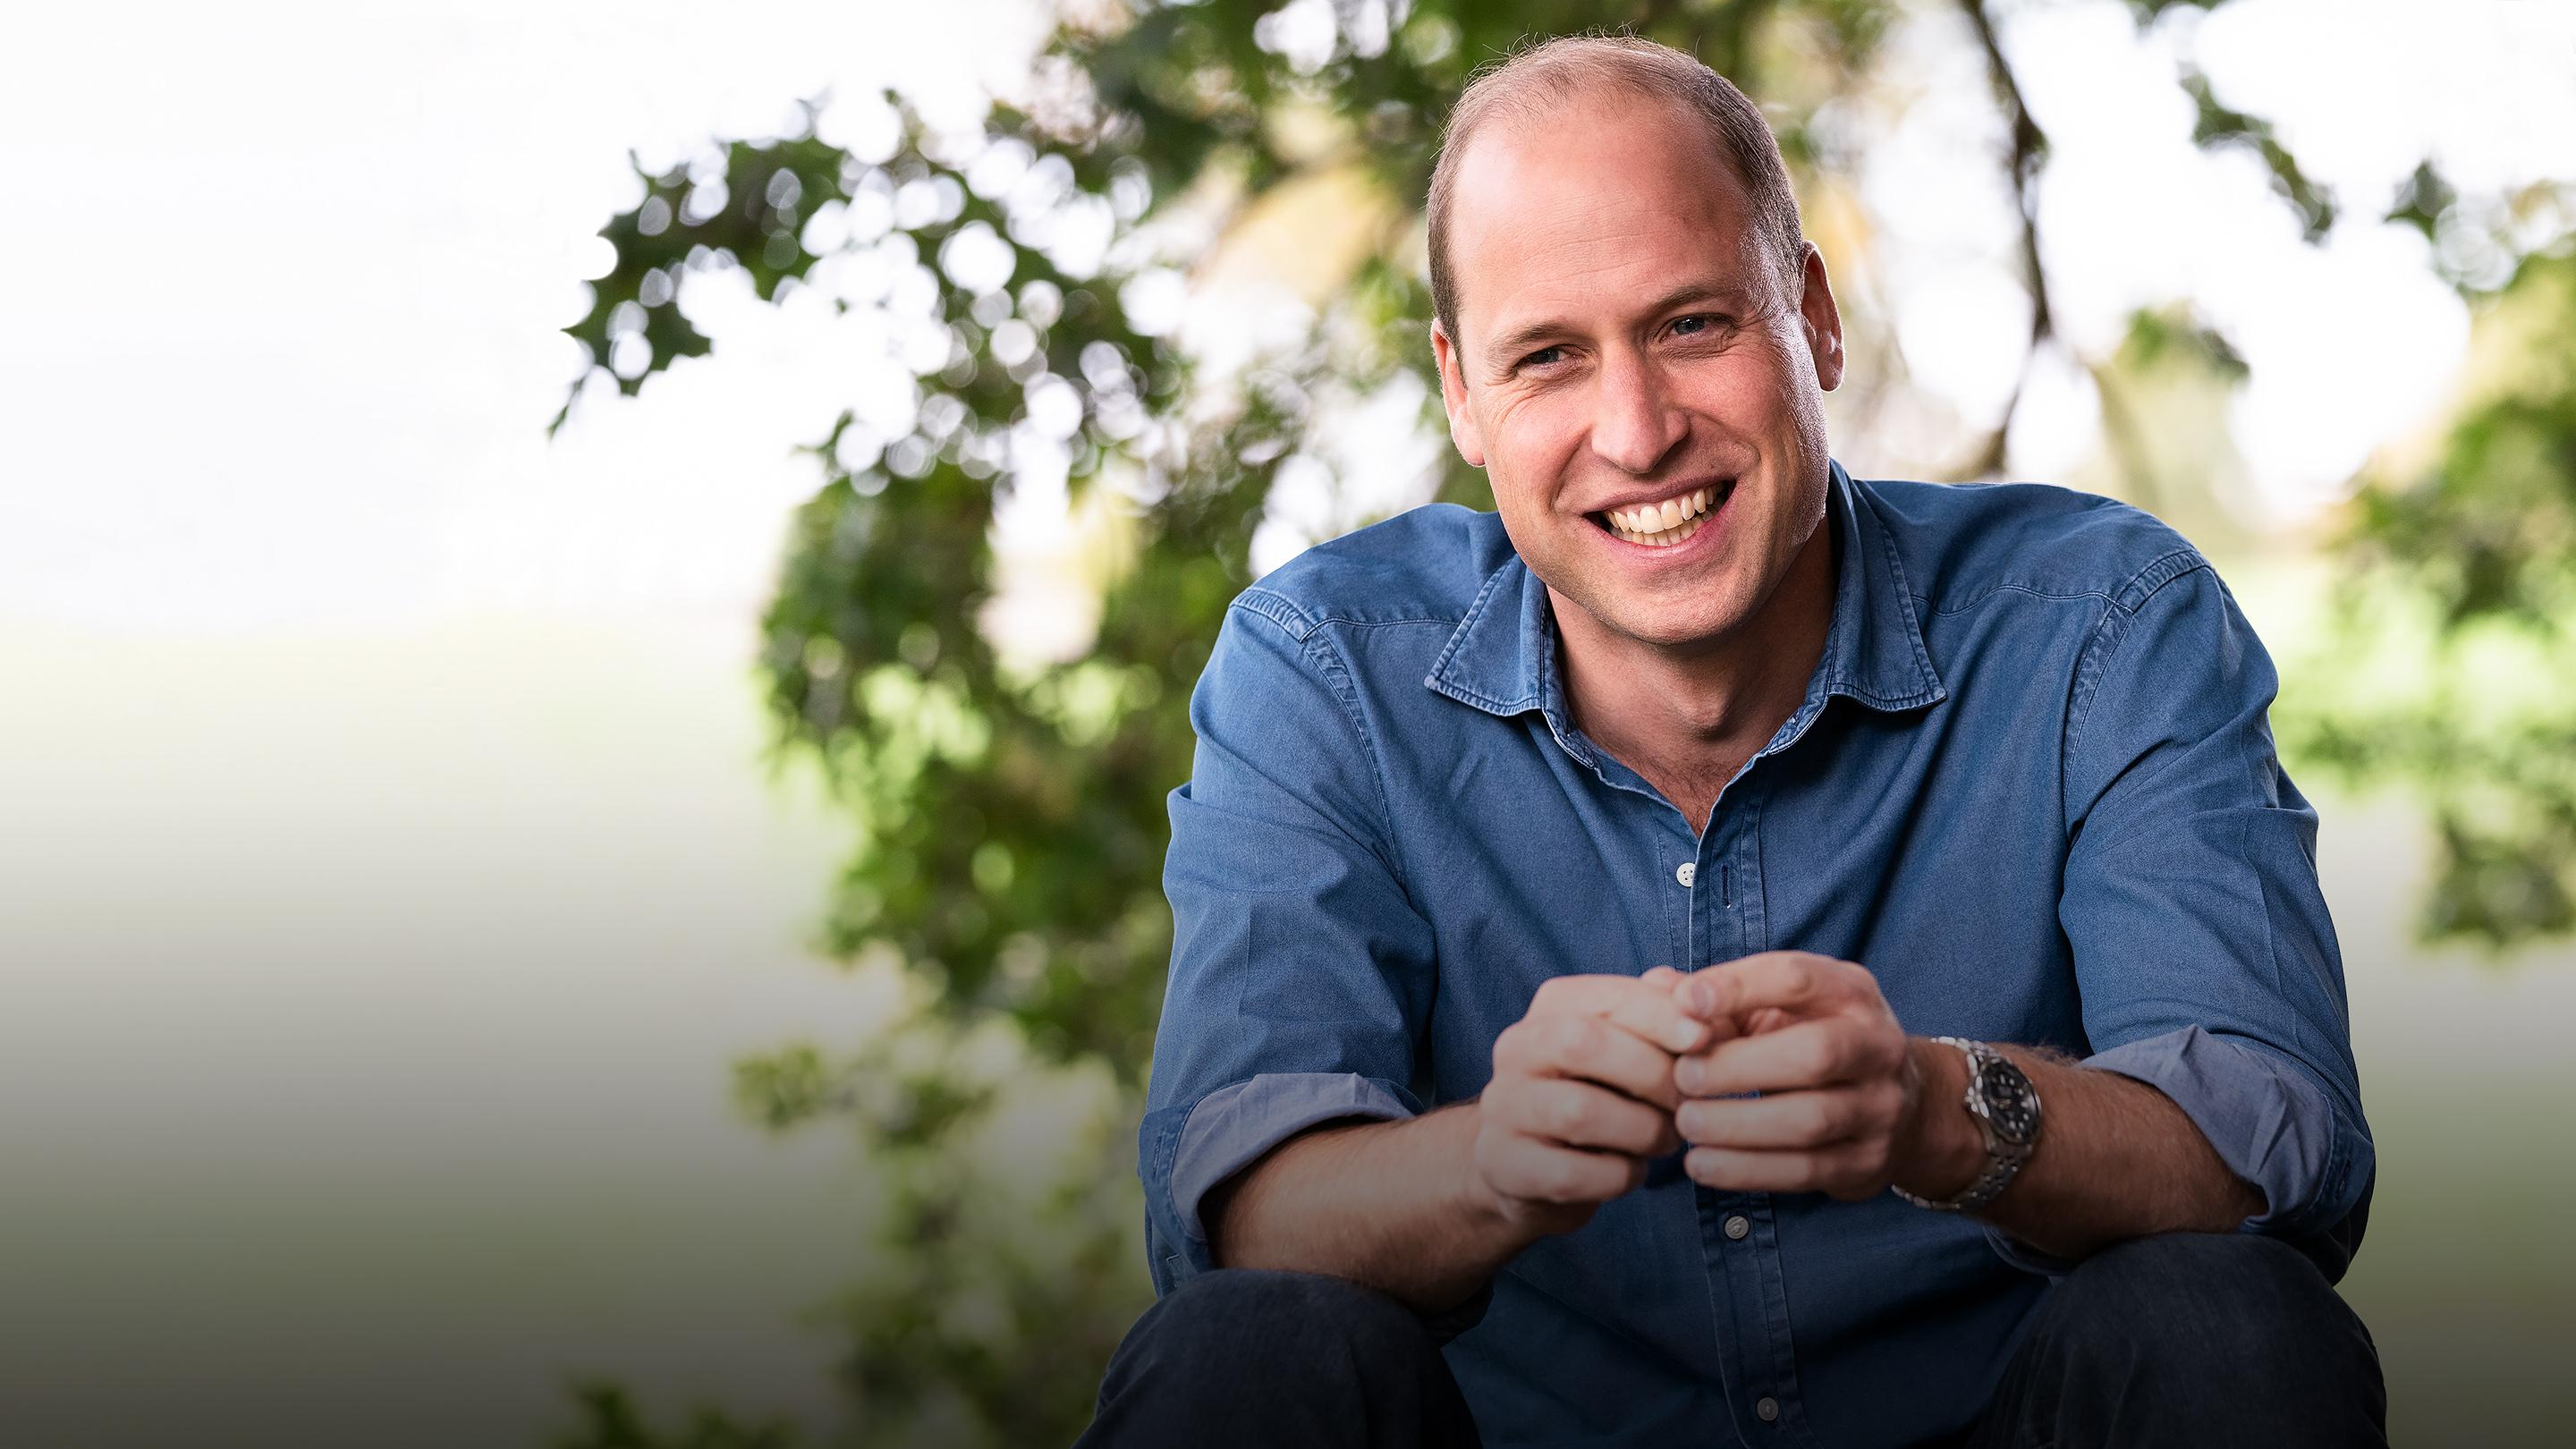 This decade calls for Earthshots to repair our planet | Prince William